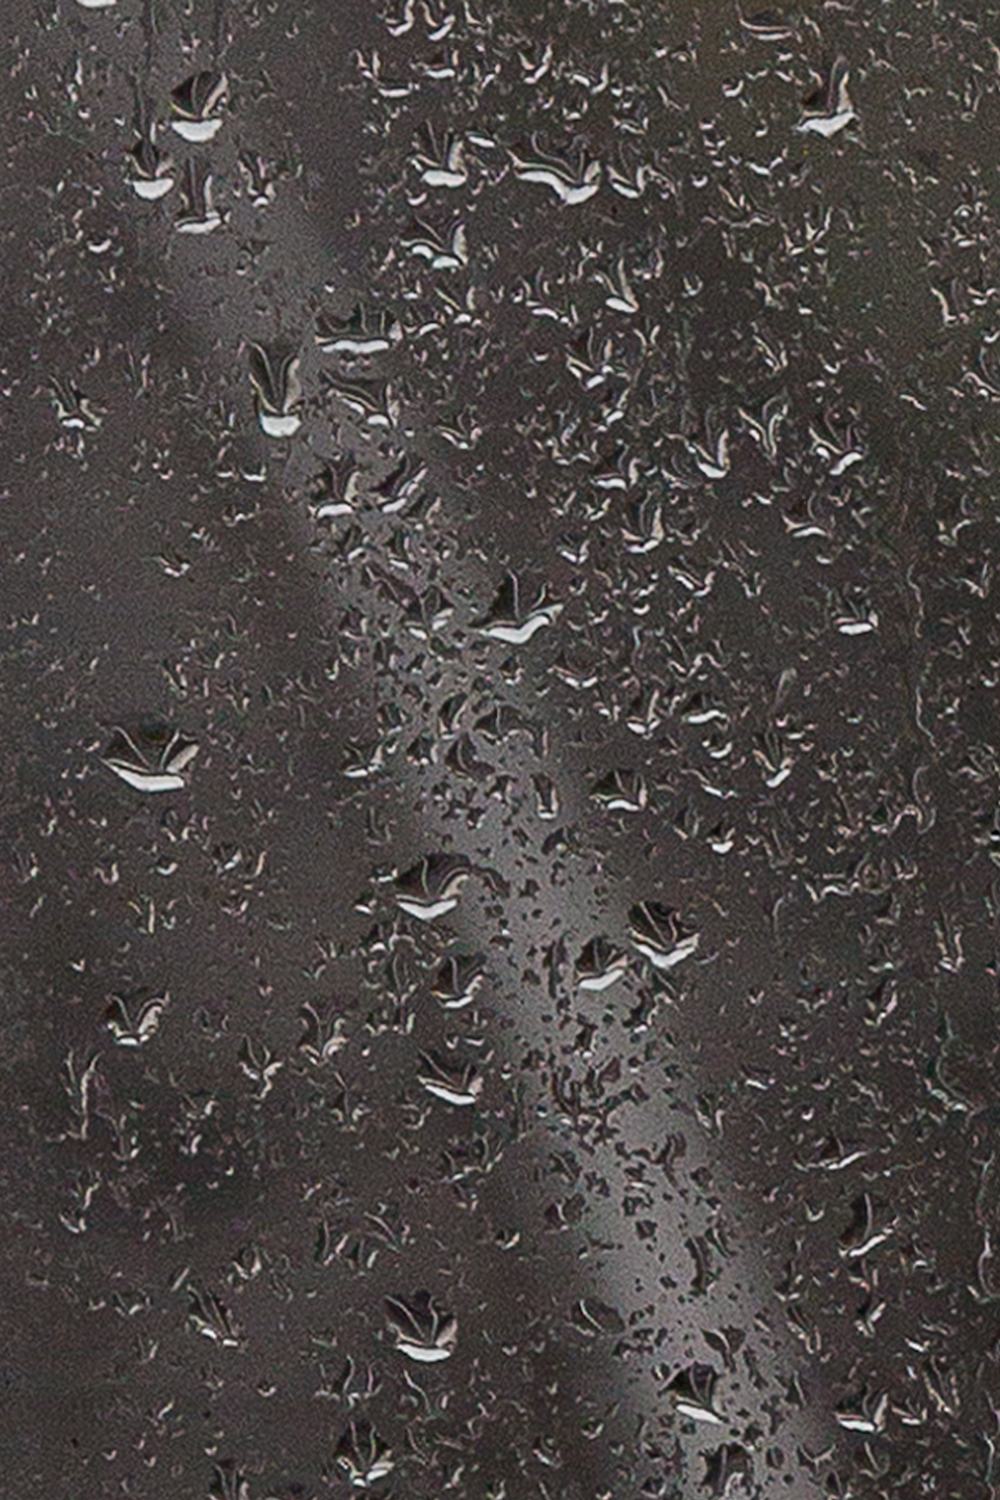 (T)RainDETAIL.WEB.jpg